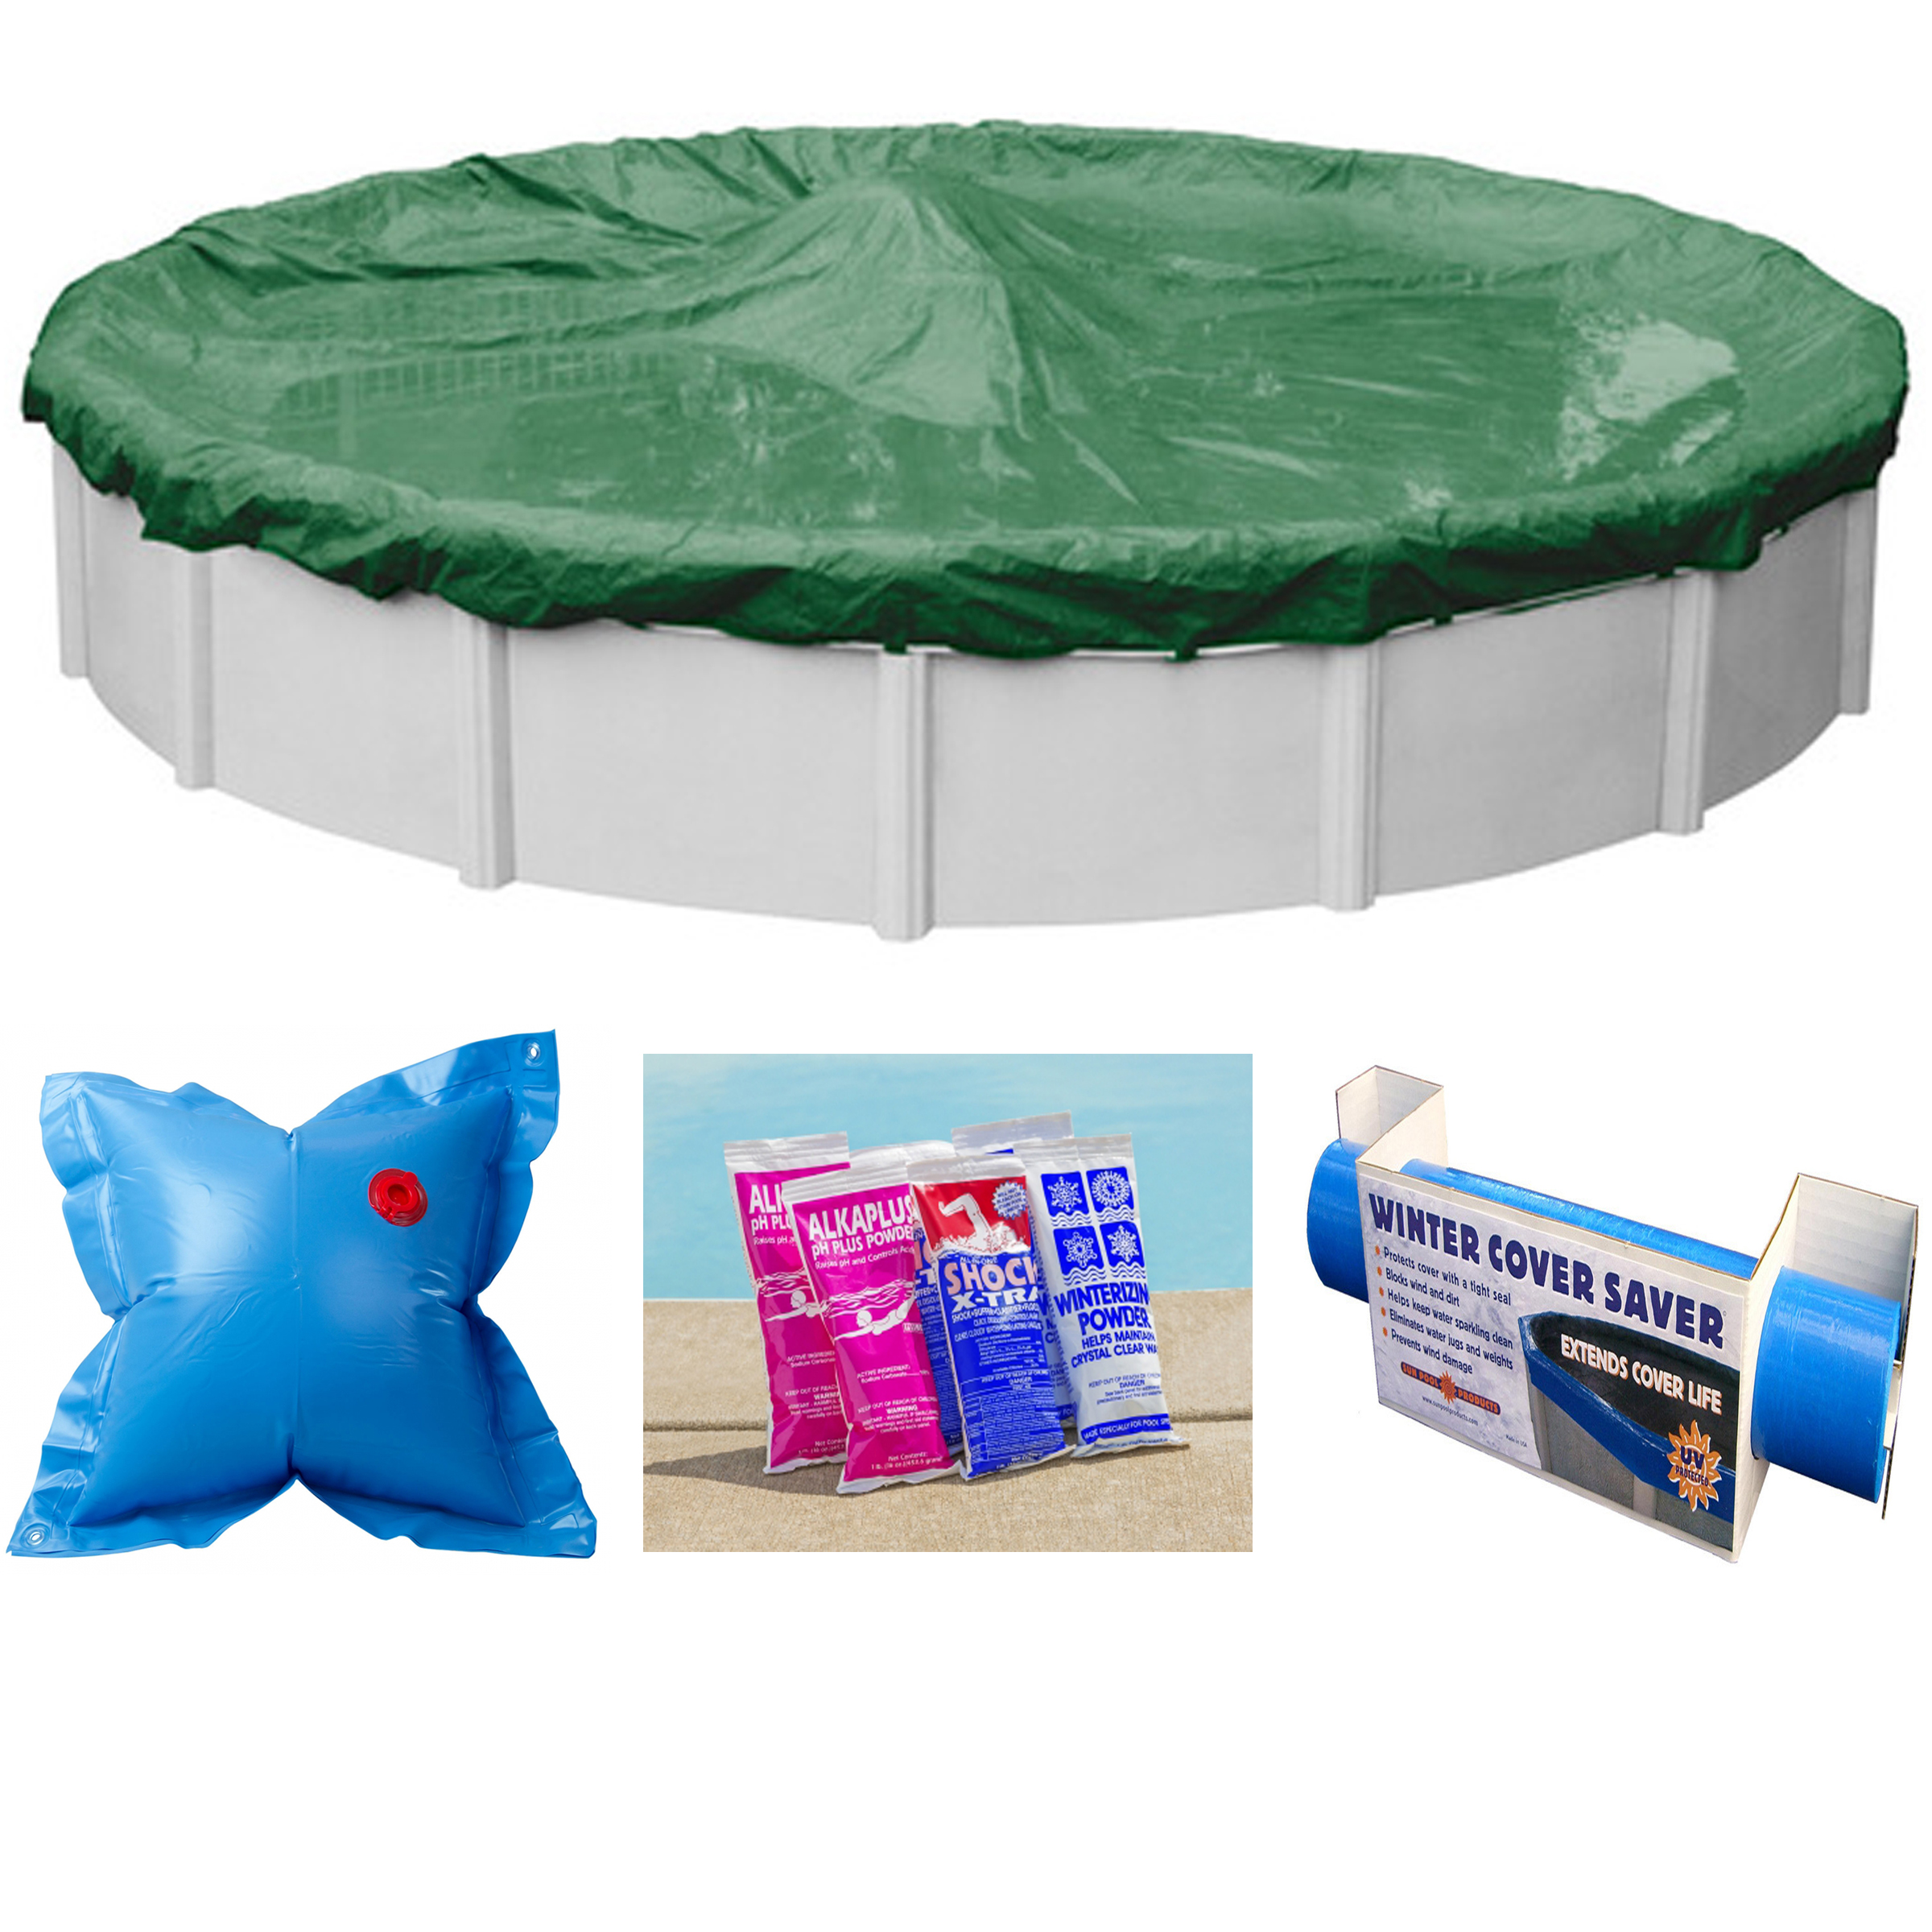 15 39 Round Ripstopper Above Ground Swimming Pool Winter Cover W Closing Kit Ebay